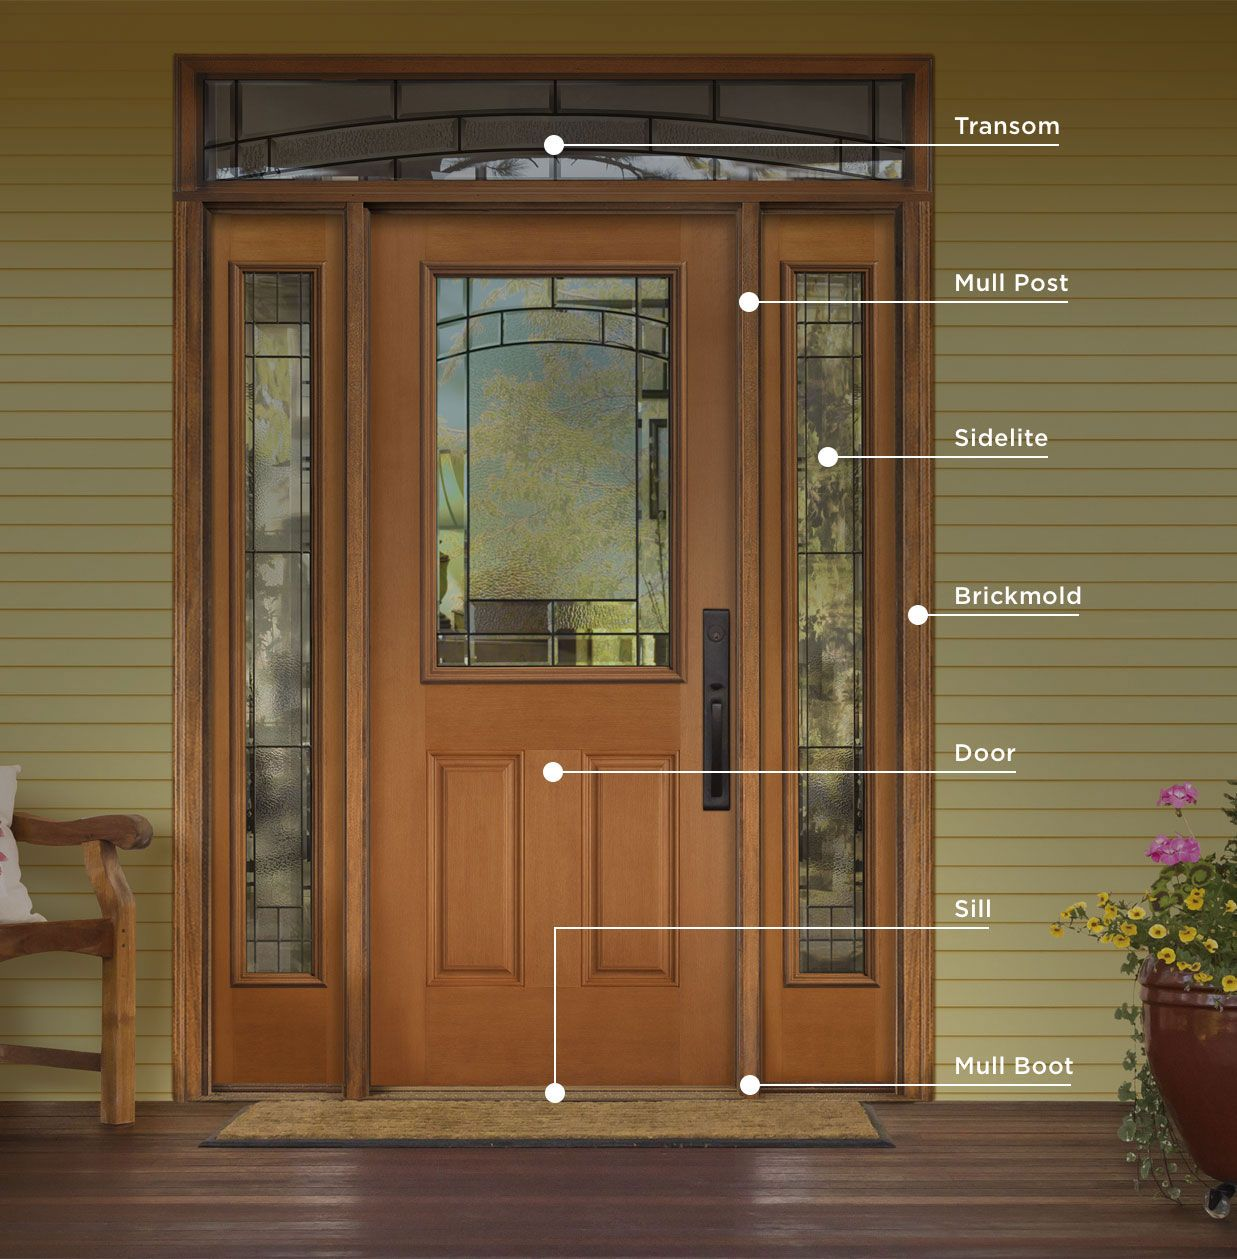 Parts Of A Door Defined